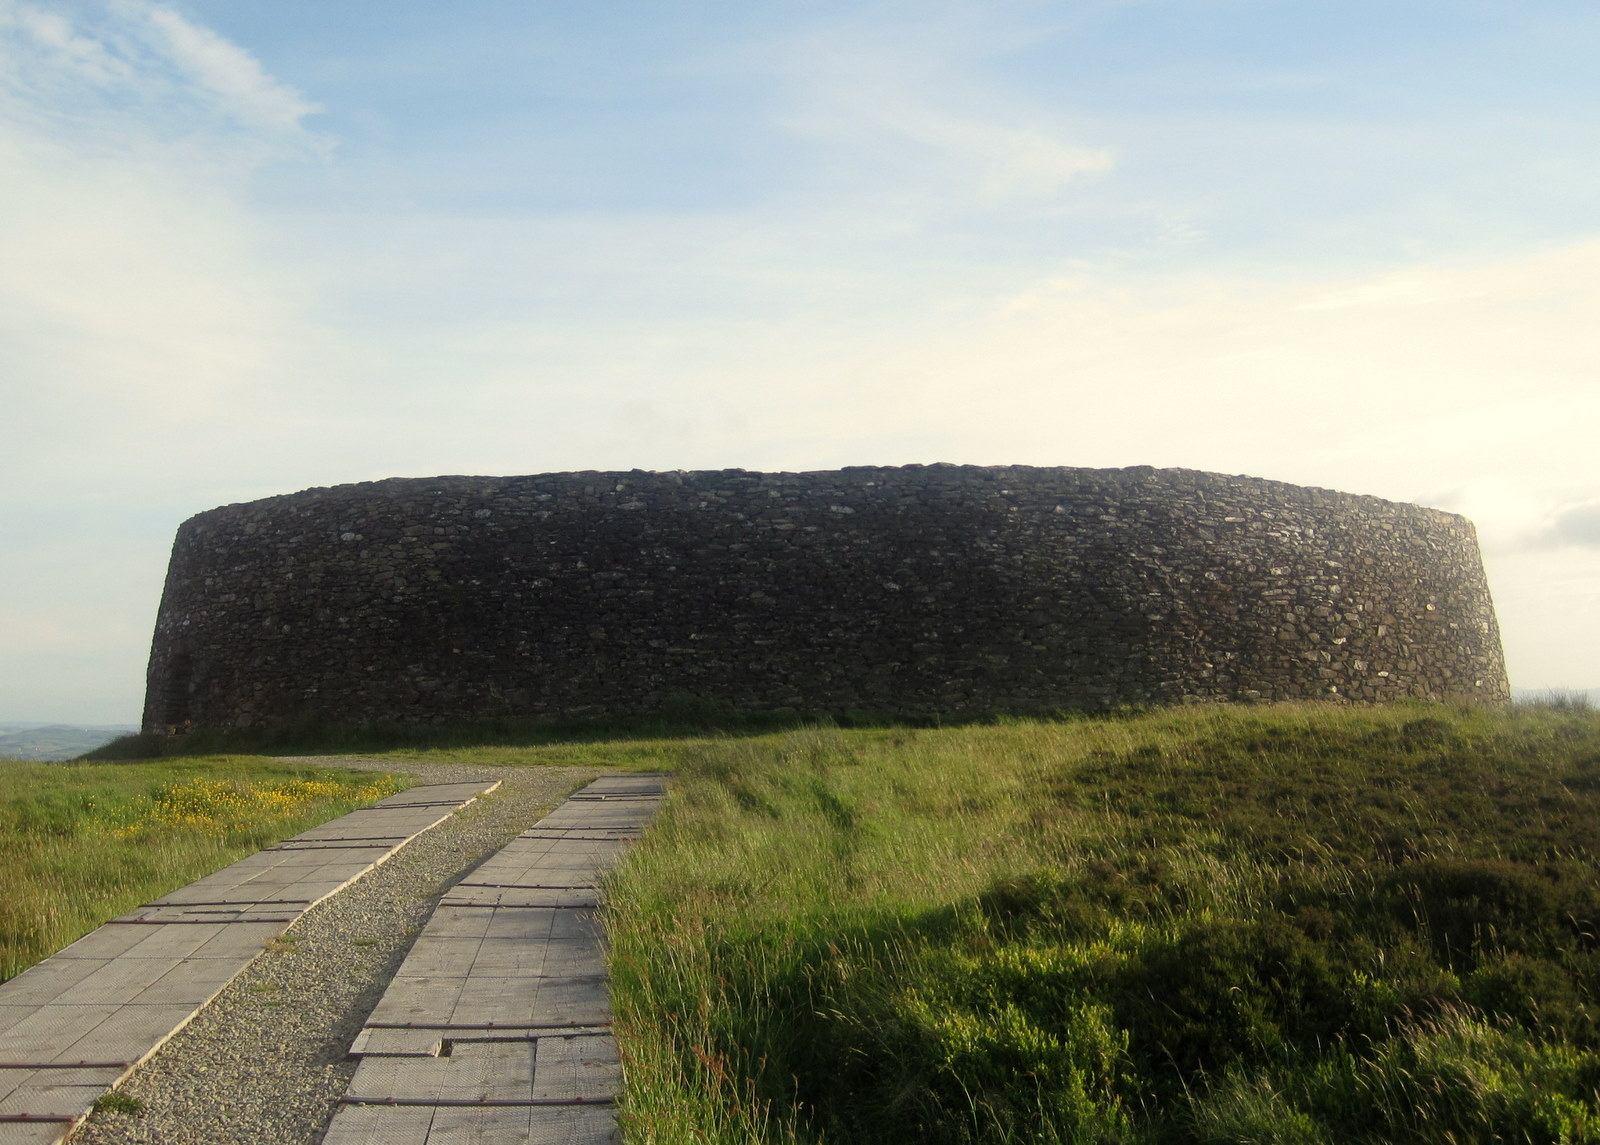 Stone fort with a path leading up to it